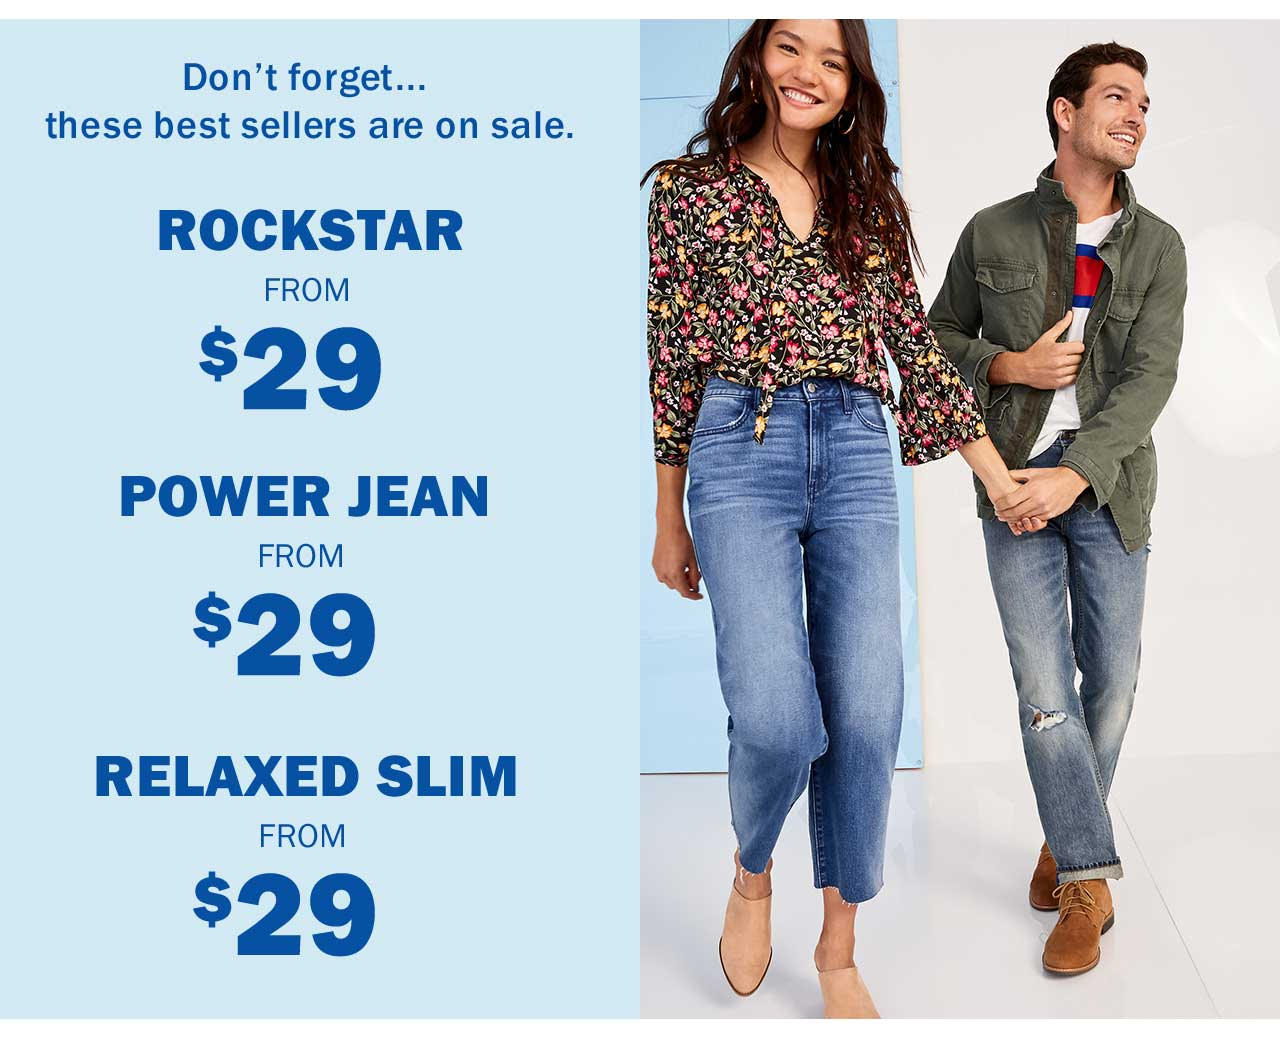 ROCKSTAR FROM $29 | POWER JEAN FROM $29 | RELAXED SLIM FROM $29